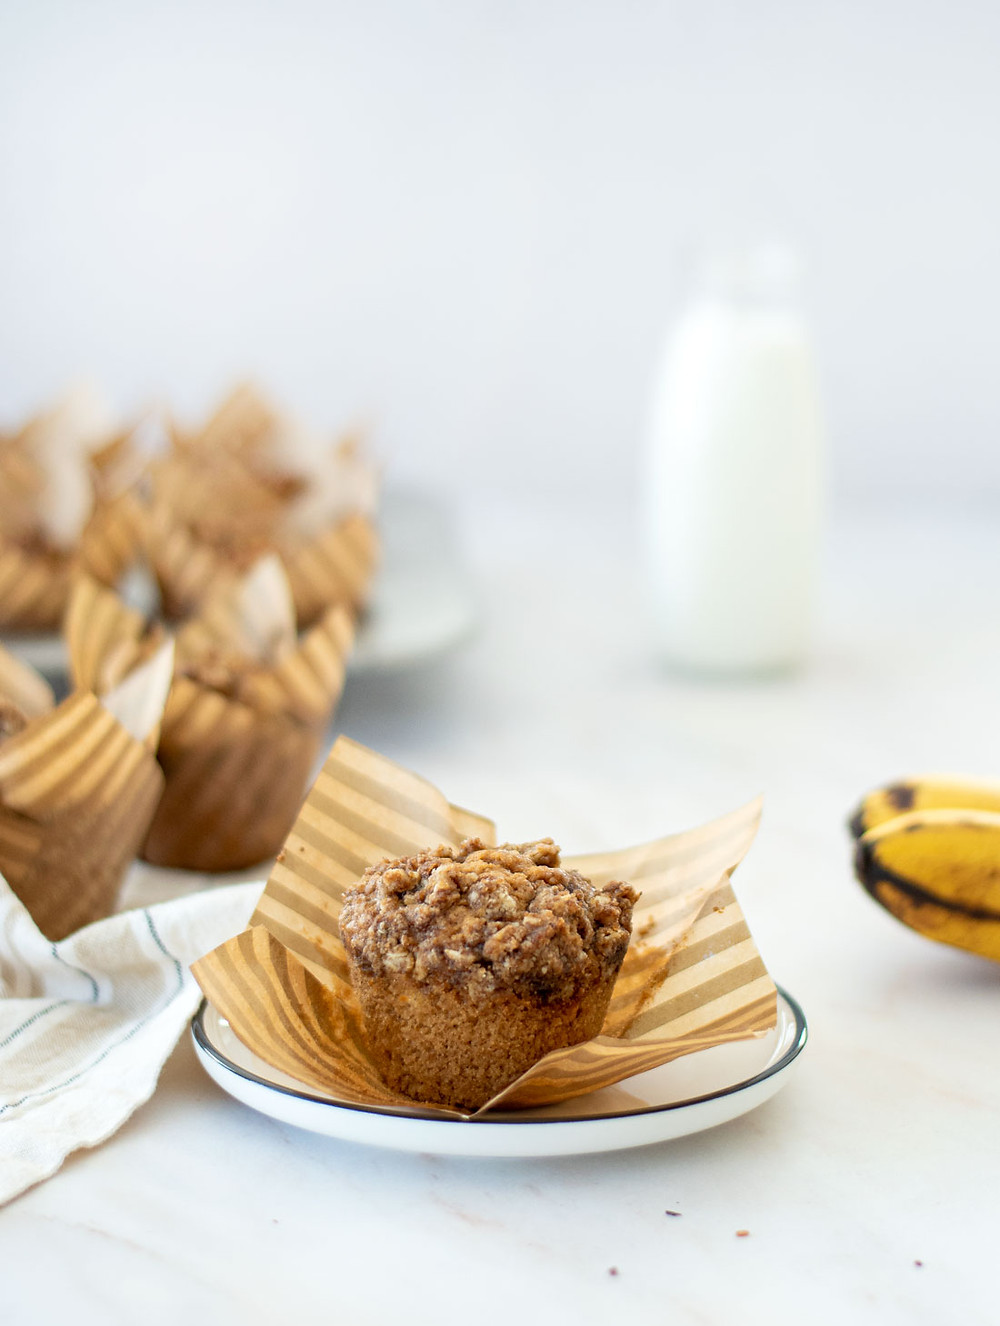 Easy and simple healthy Brown Sugar Banana Muffin recipe. This recipe uses overly ripe bananas to make the best healthy and delicious banana muffins. They have a crumble top which makes them even more yummy! #organicmuffins #highaltitudebaking #bananamuffins #brownsugarmuffins #healthymuffins #organicbaking